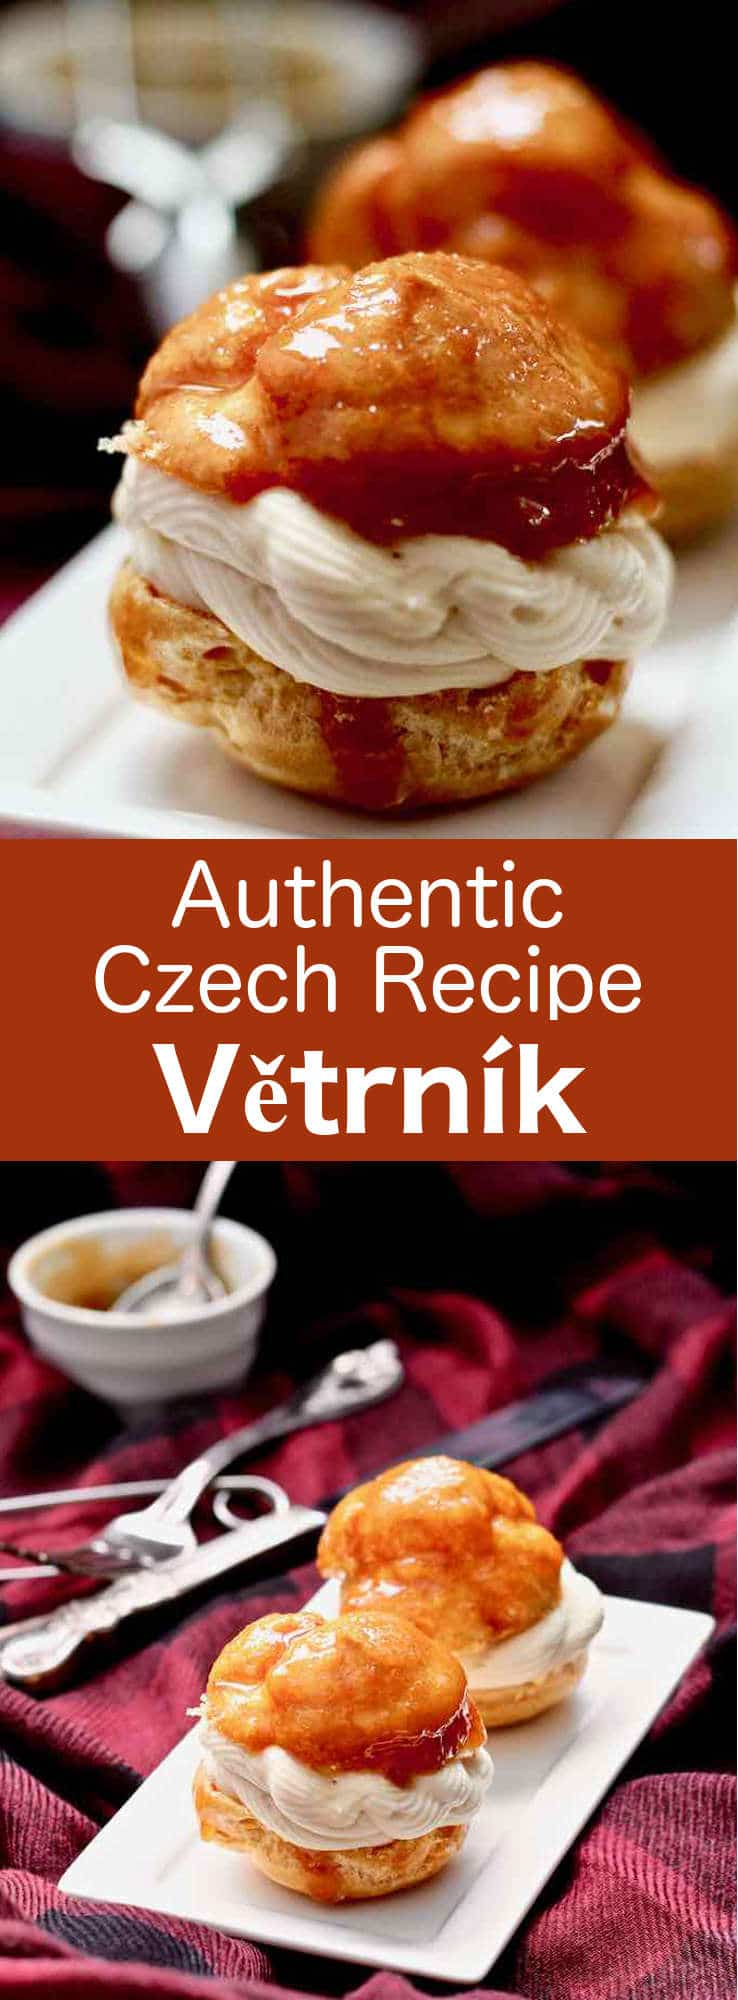 Větrník is a delicious little choux pastry topped with caramel and vanilla cream, and covered with a glossy caramel icing, that is popular in the Czech Republic. #CzechRepublic #CzechCuisine #CzechRecipe #Dessert #CzechDessert #Vegetarian #WorldCuisine #196flavors